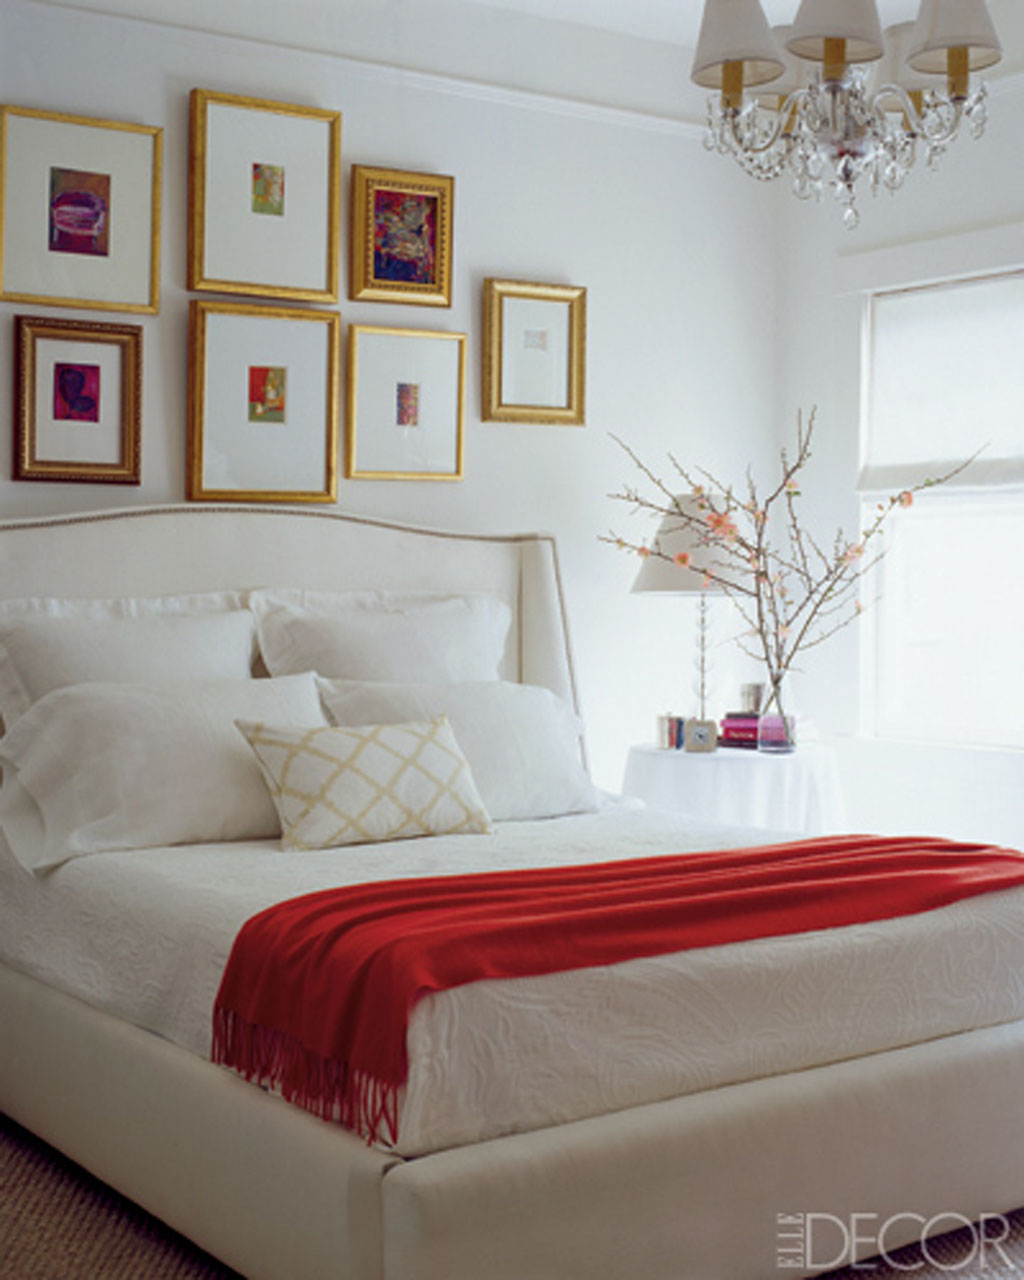 Black white and red bedroom ideas 5 small interior ideas Red black white bedroom ideas